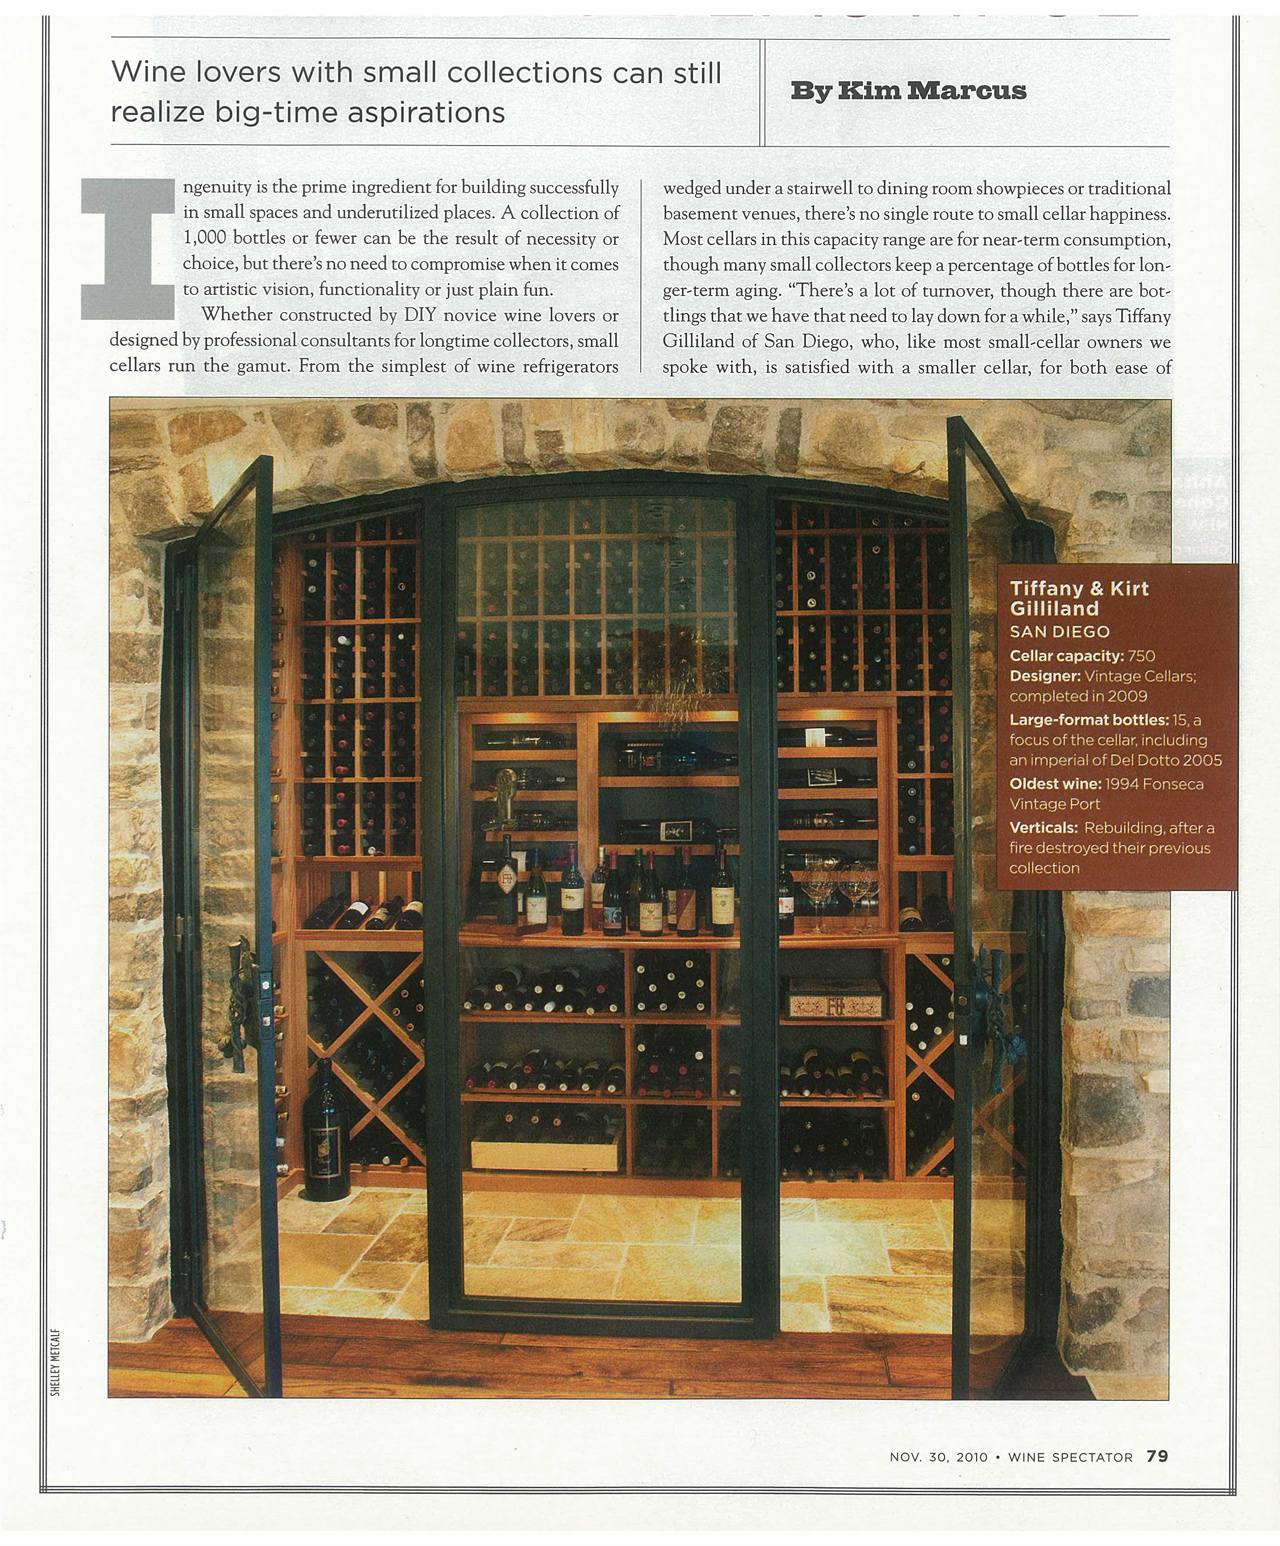 The Gilliland\u0027s 750-bottle wine cellar in San Diego completed in & Vintage Cellars Featured in Wine Spectator! |